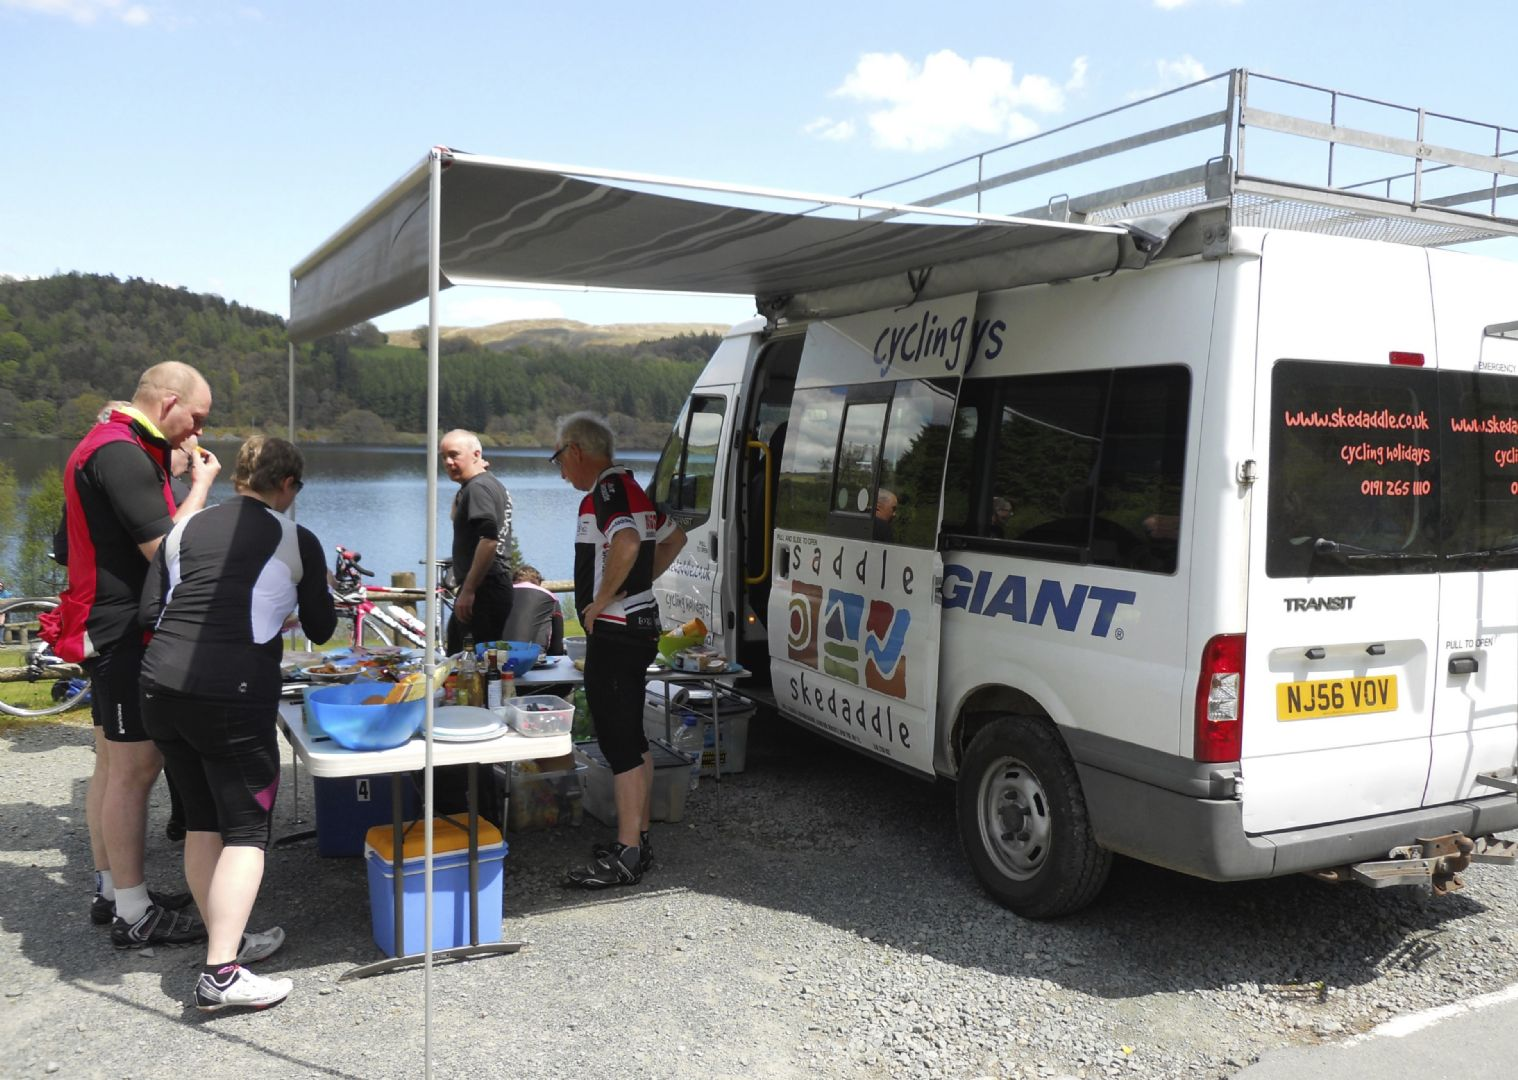 _Staff.240.10671.jpg - UK - North Wales - Guided Road Cycling Weekend - Road Cycling